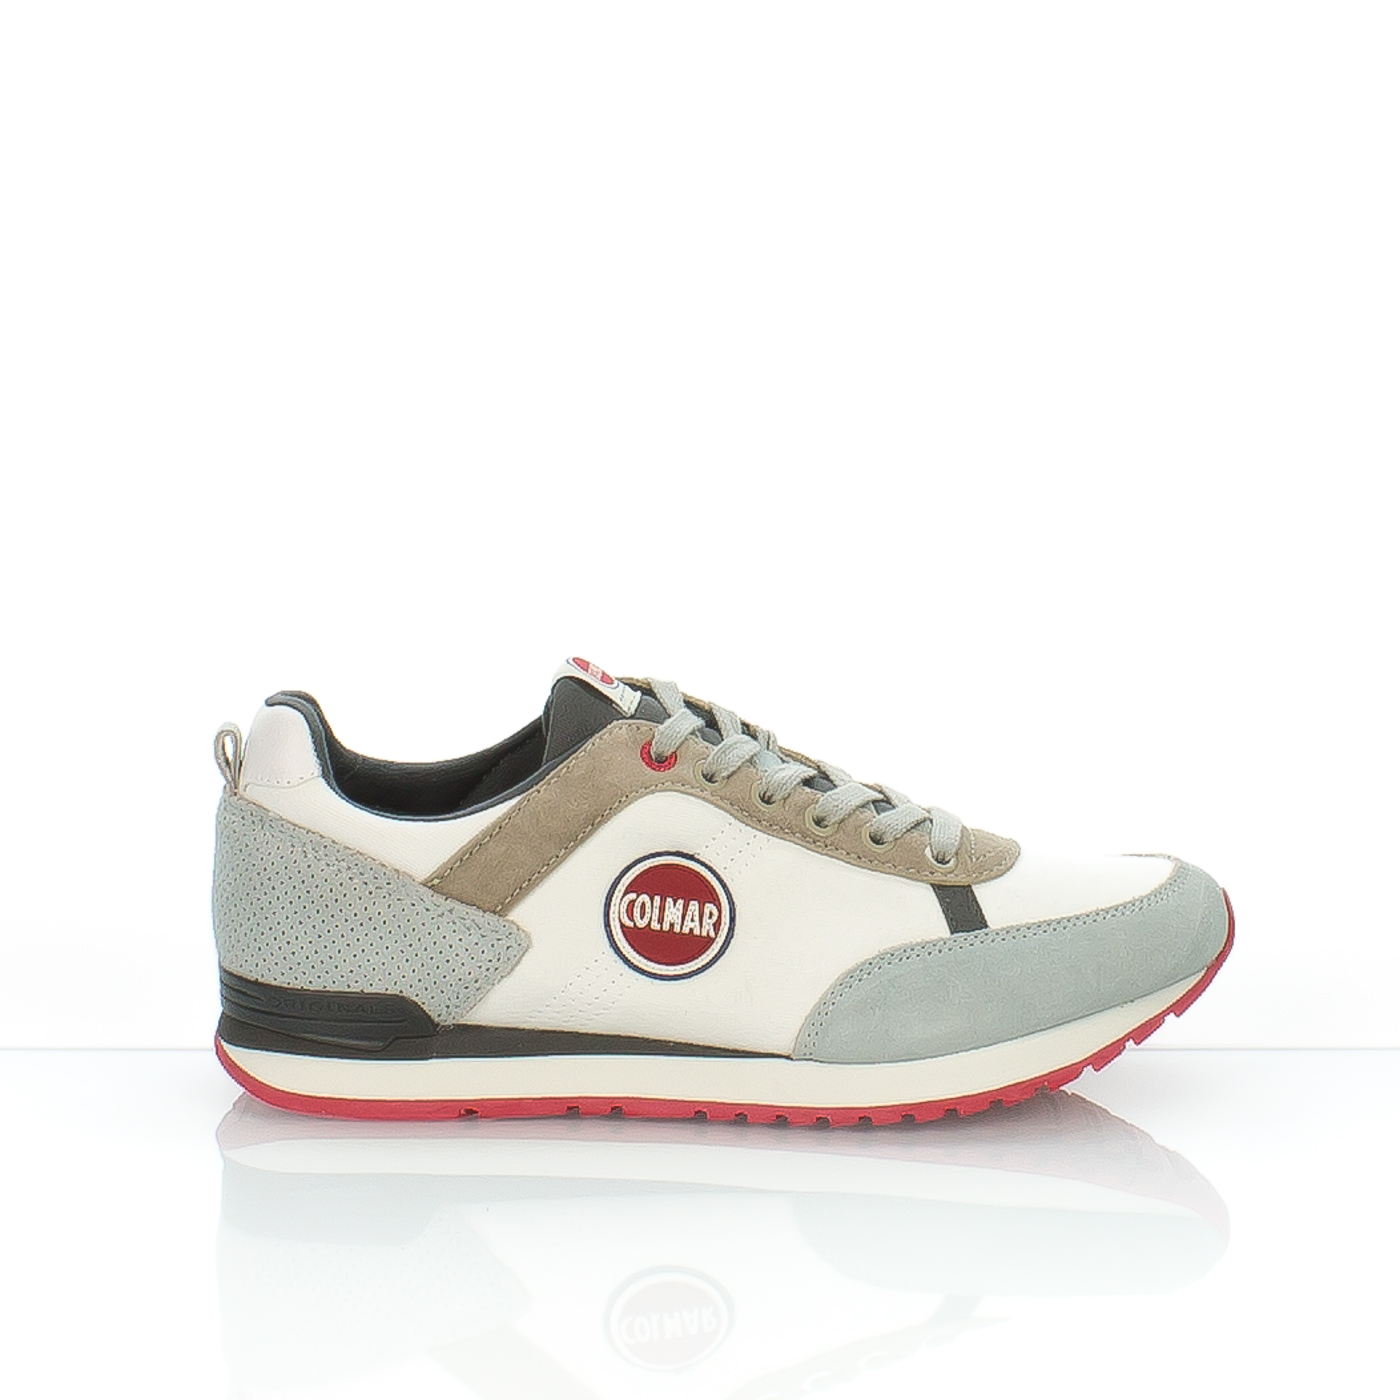 COLMAR SNEAKERS TRAVIS COLOR 106-125-61 TESSUTO BIANCO BEIGE · Quick view f7e23247671